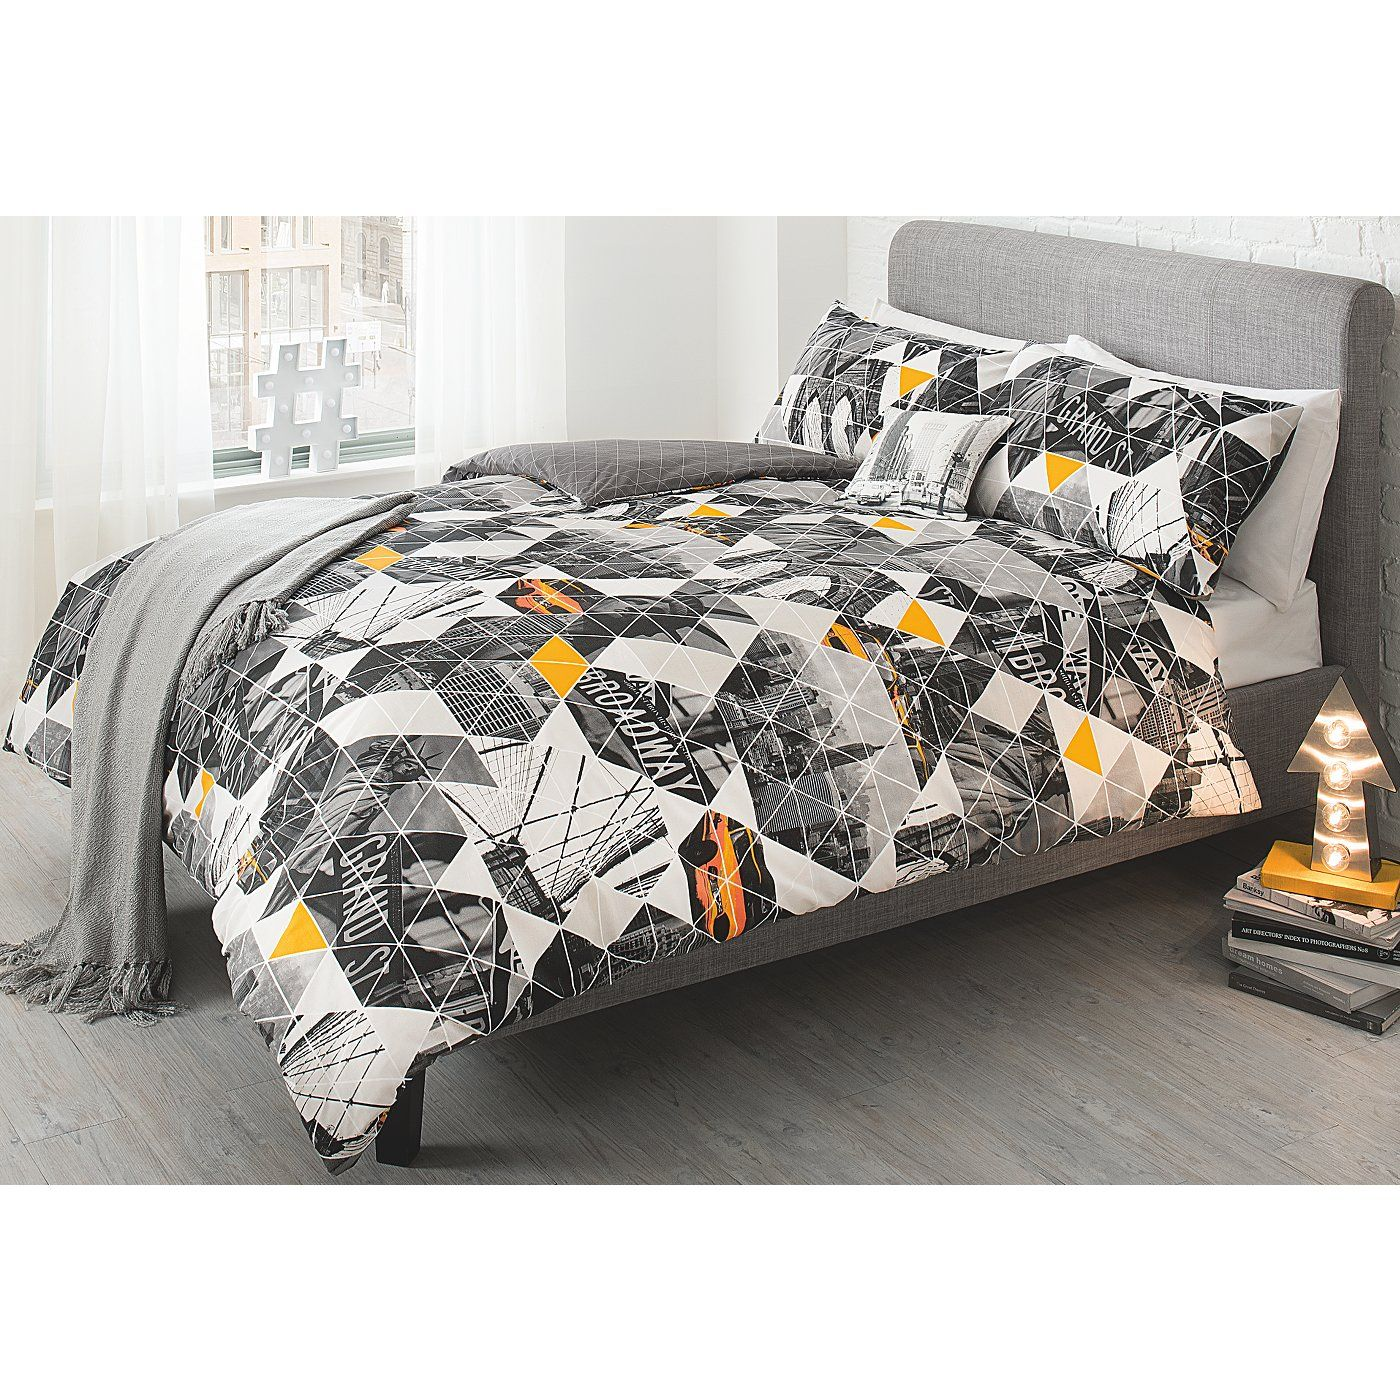 single black king double where duvet brentfords cover pillowcase buy set stripe with itm a satin quilt to